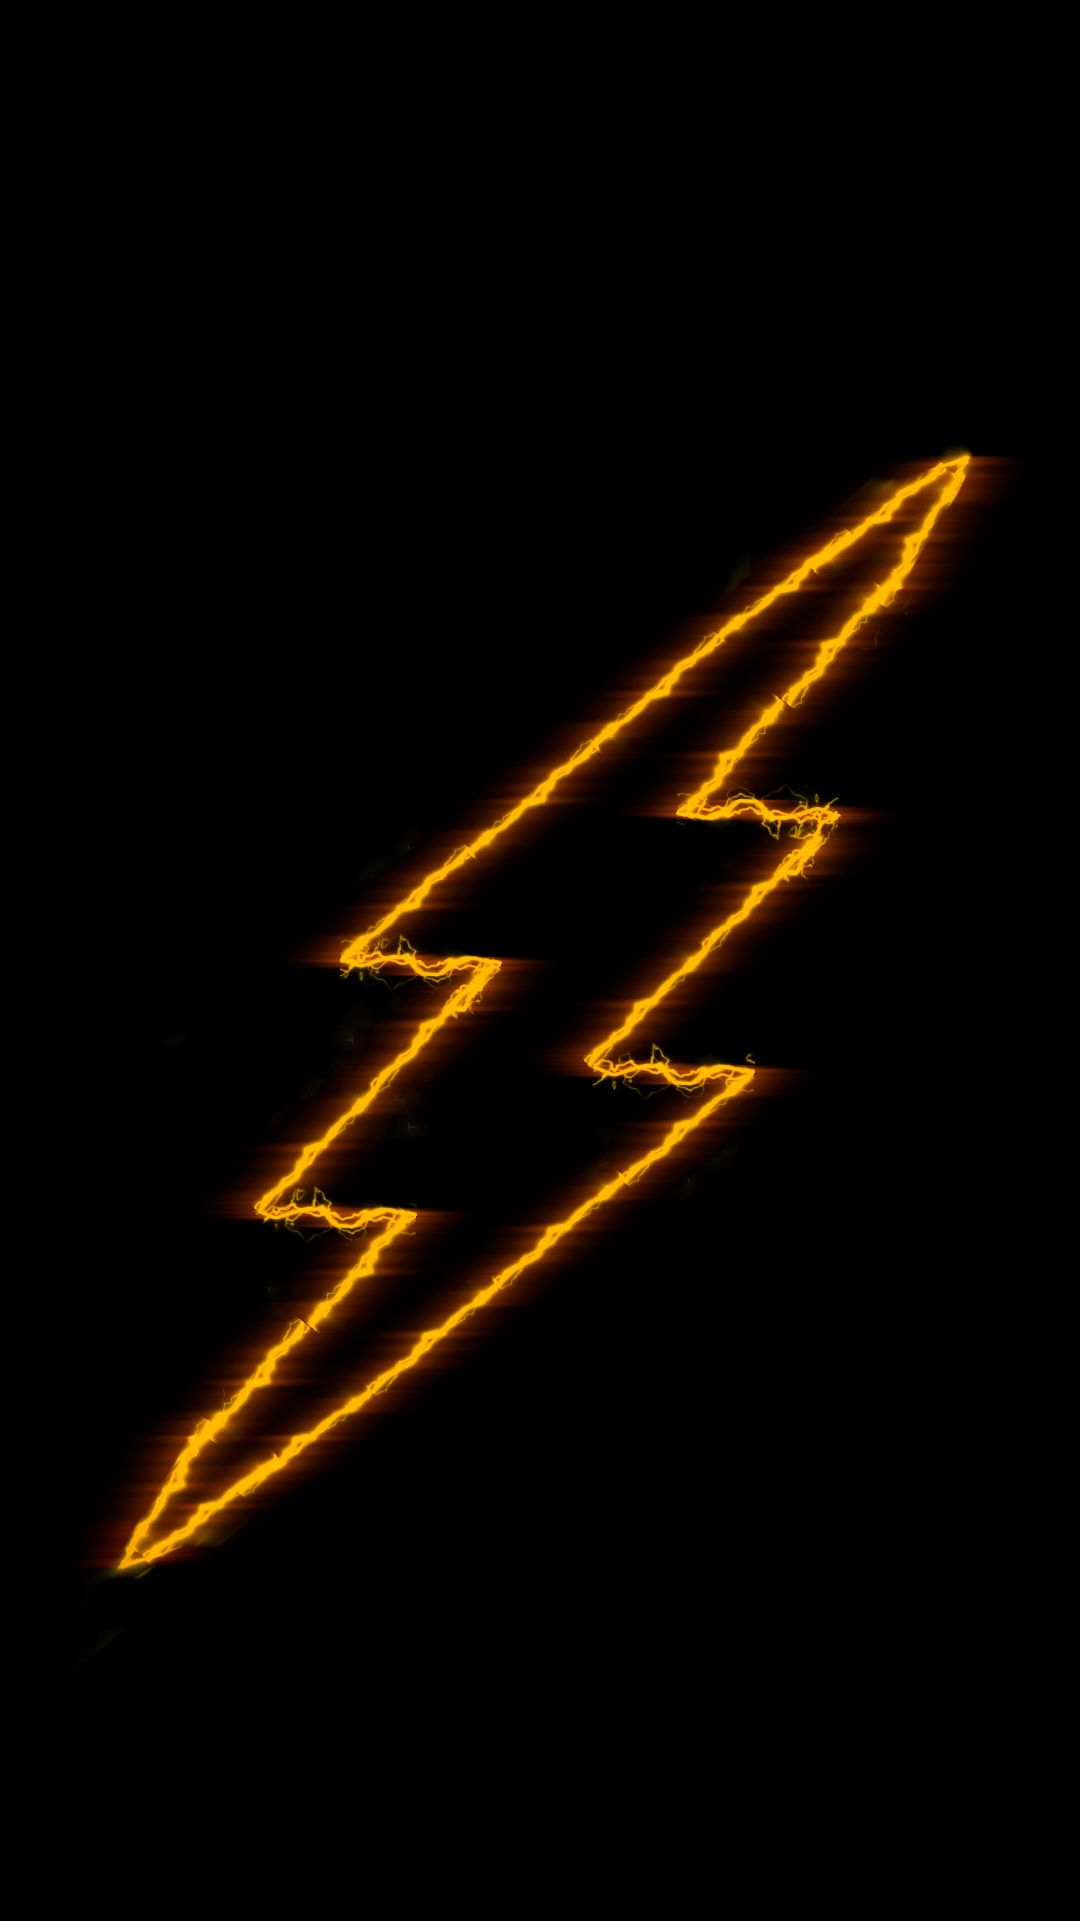 Wallpaper iphone 6 xman - The Flash Logo Wallpaper Free Custom Made Iphone 6 6s Wallpaper Use For Free